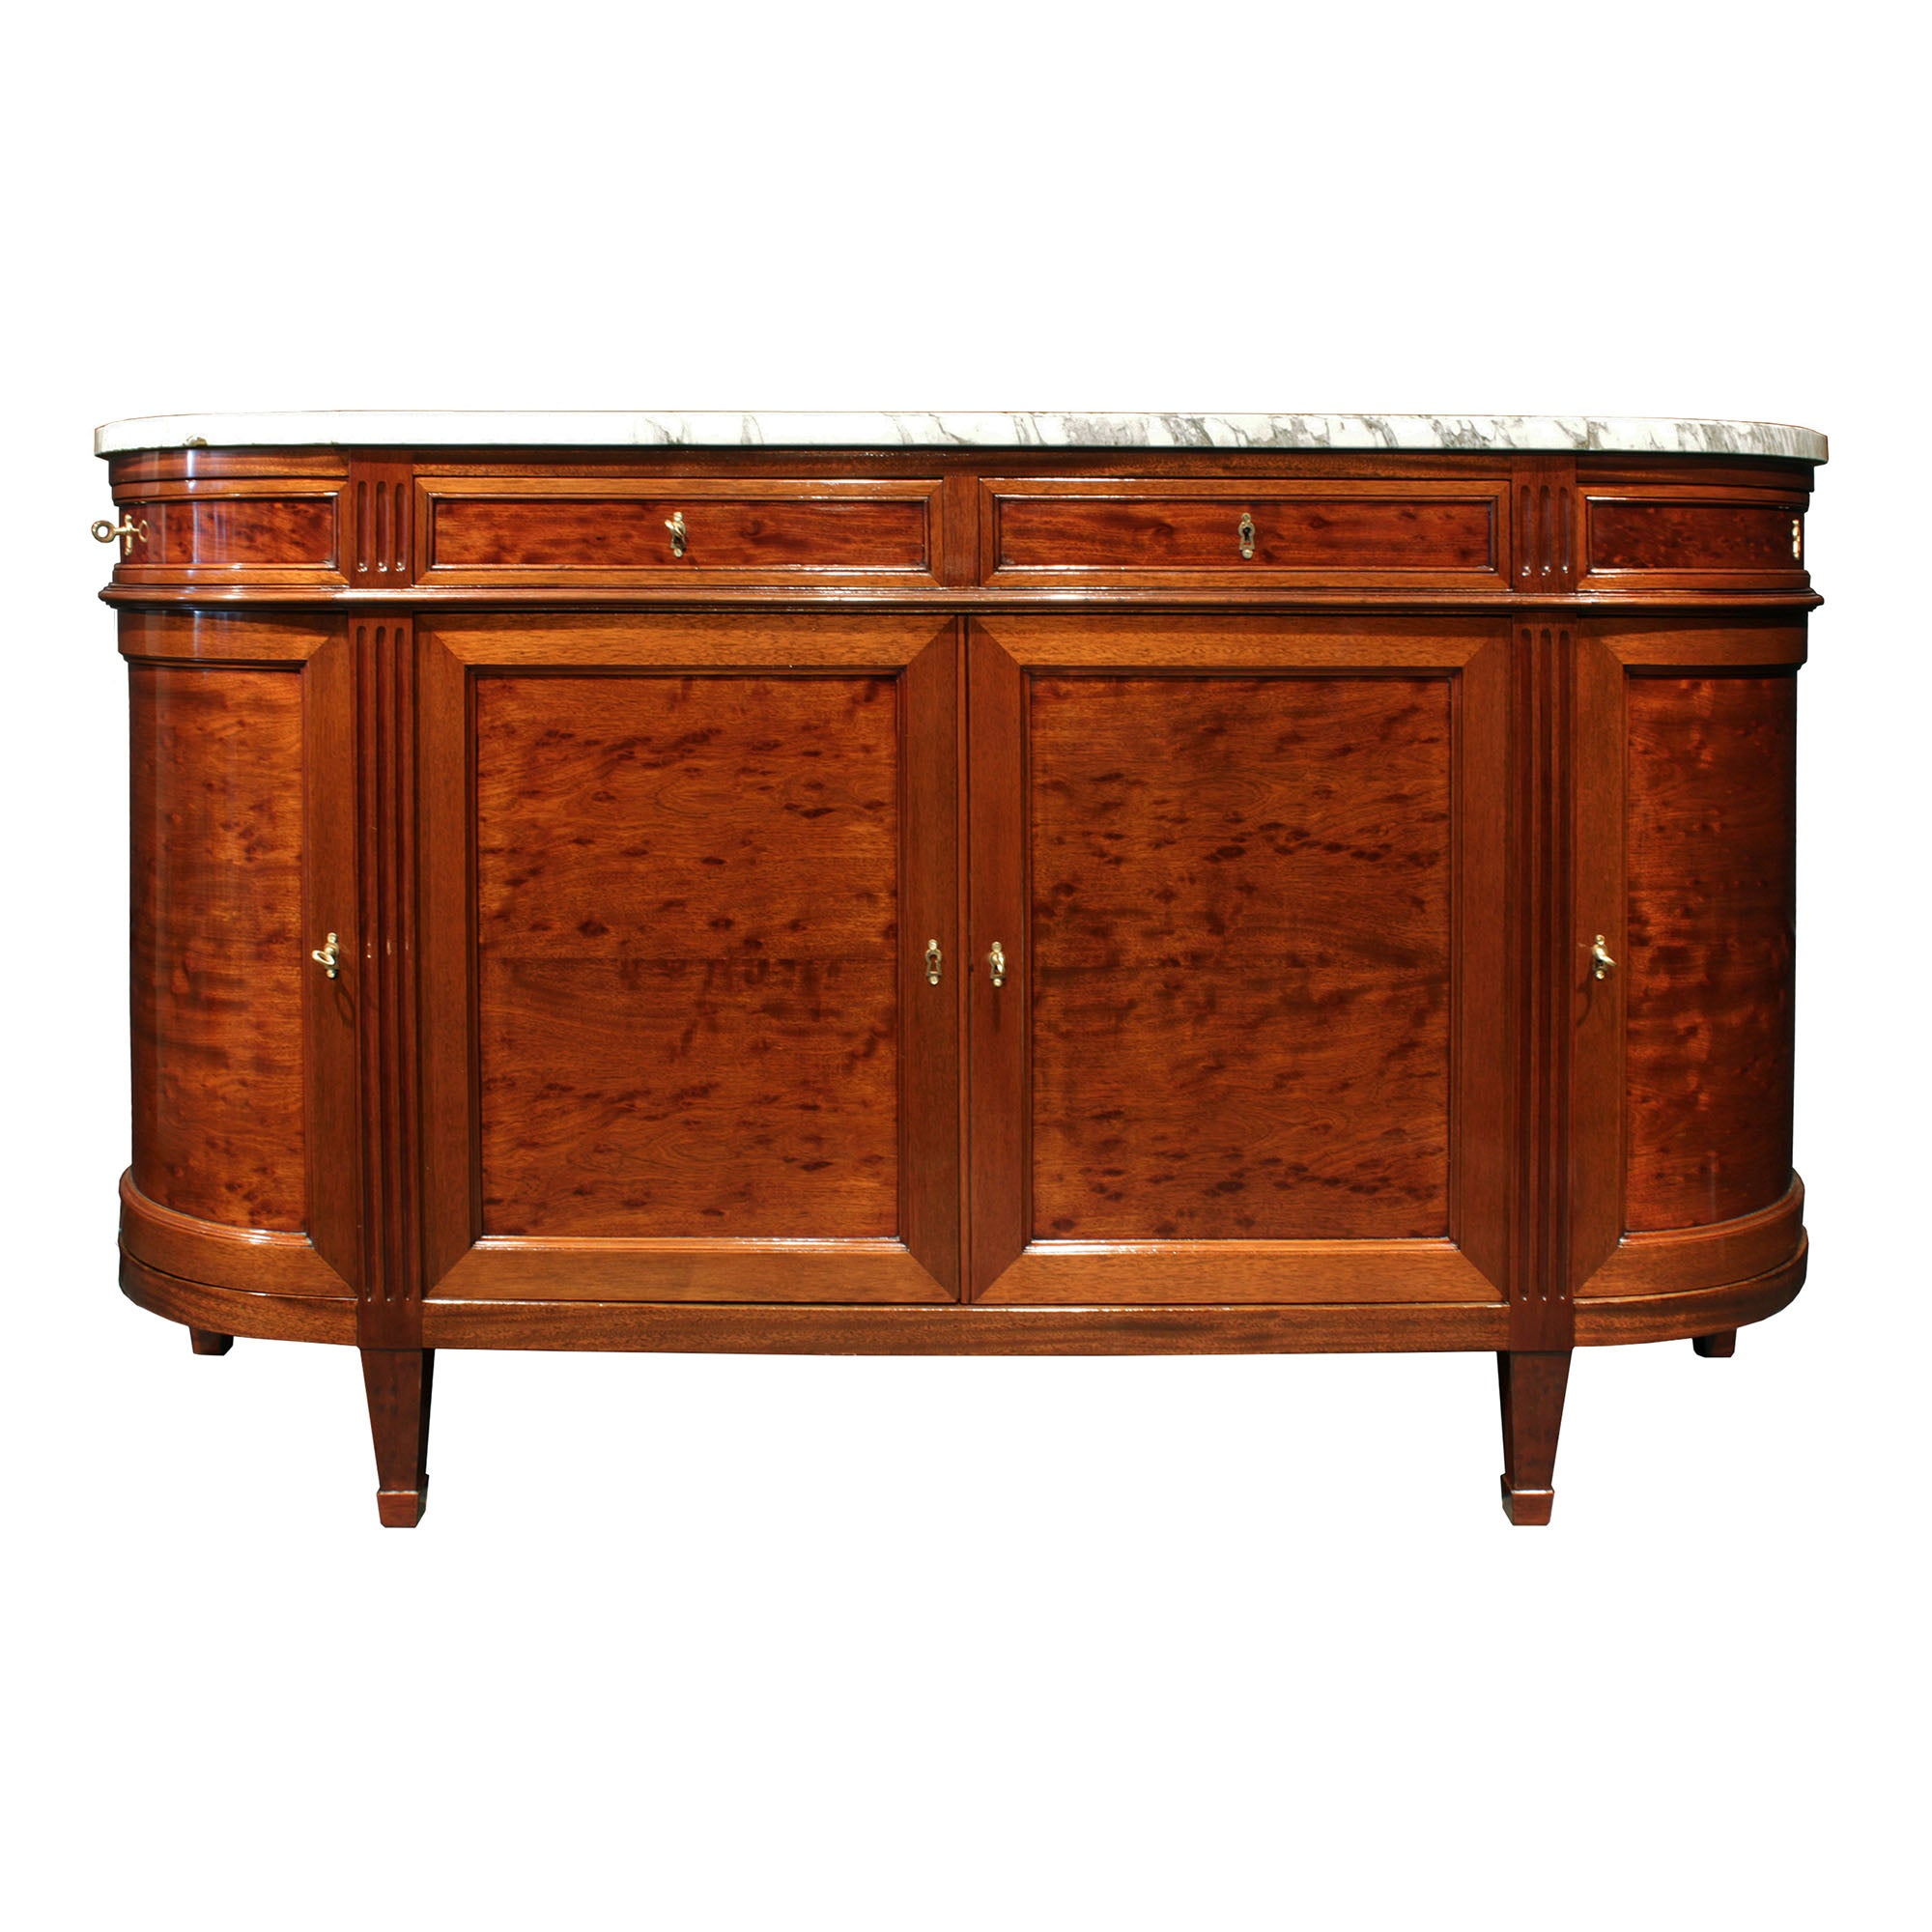 French 19th Century Louis XVI Style Mouchettte Mahogany Buffet